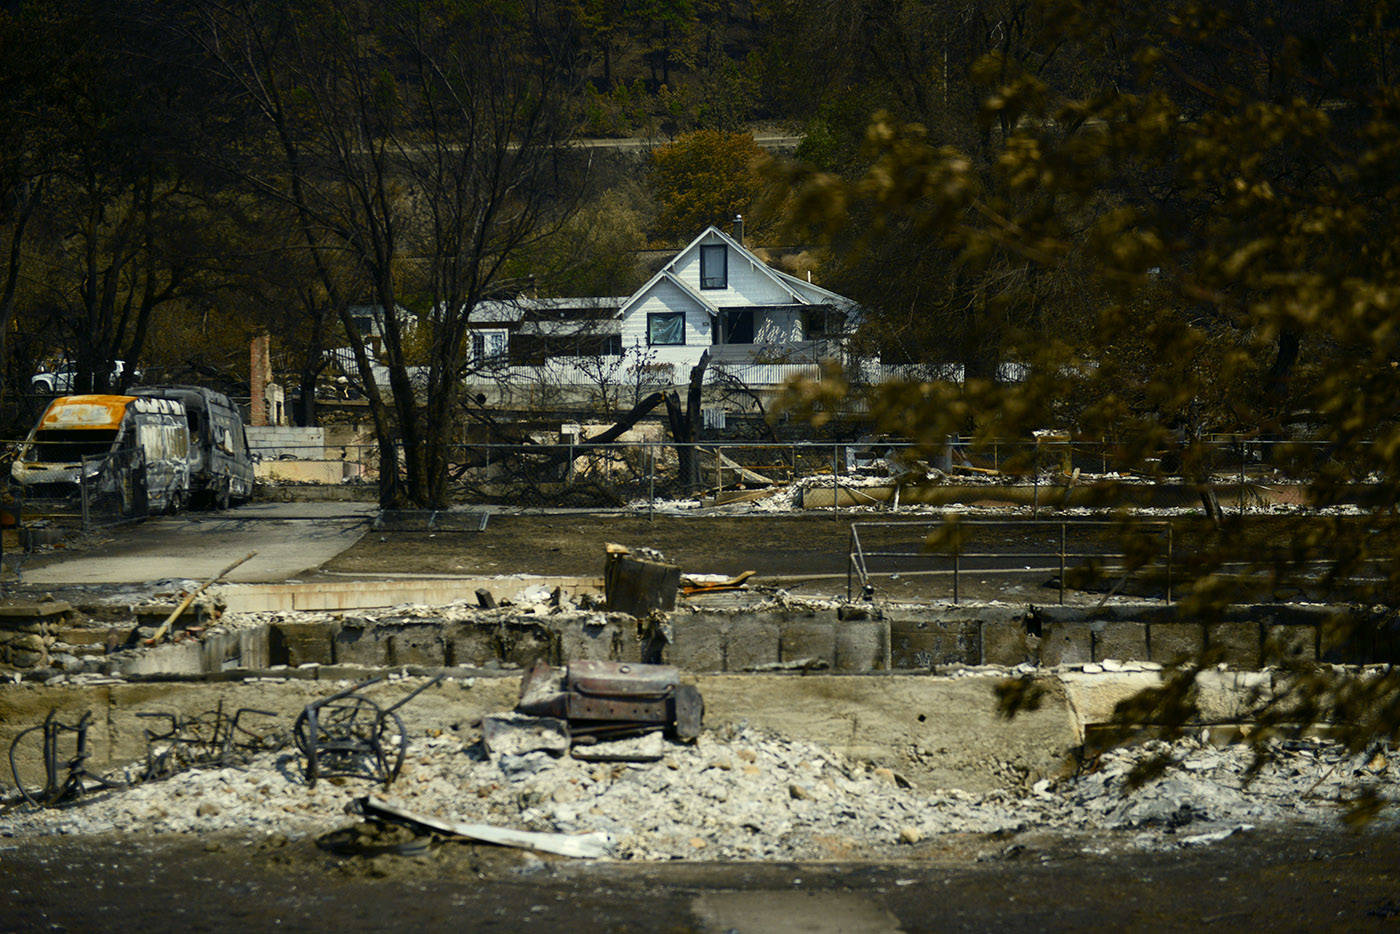 A house stands amid the burnt debris in the Village of Lytton, B.C. on Friday, July 9, 2021 following a massive wildfire that tore through the town destroying 90 per cent of it. (Jenna Hauck/ Black Press Media)